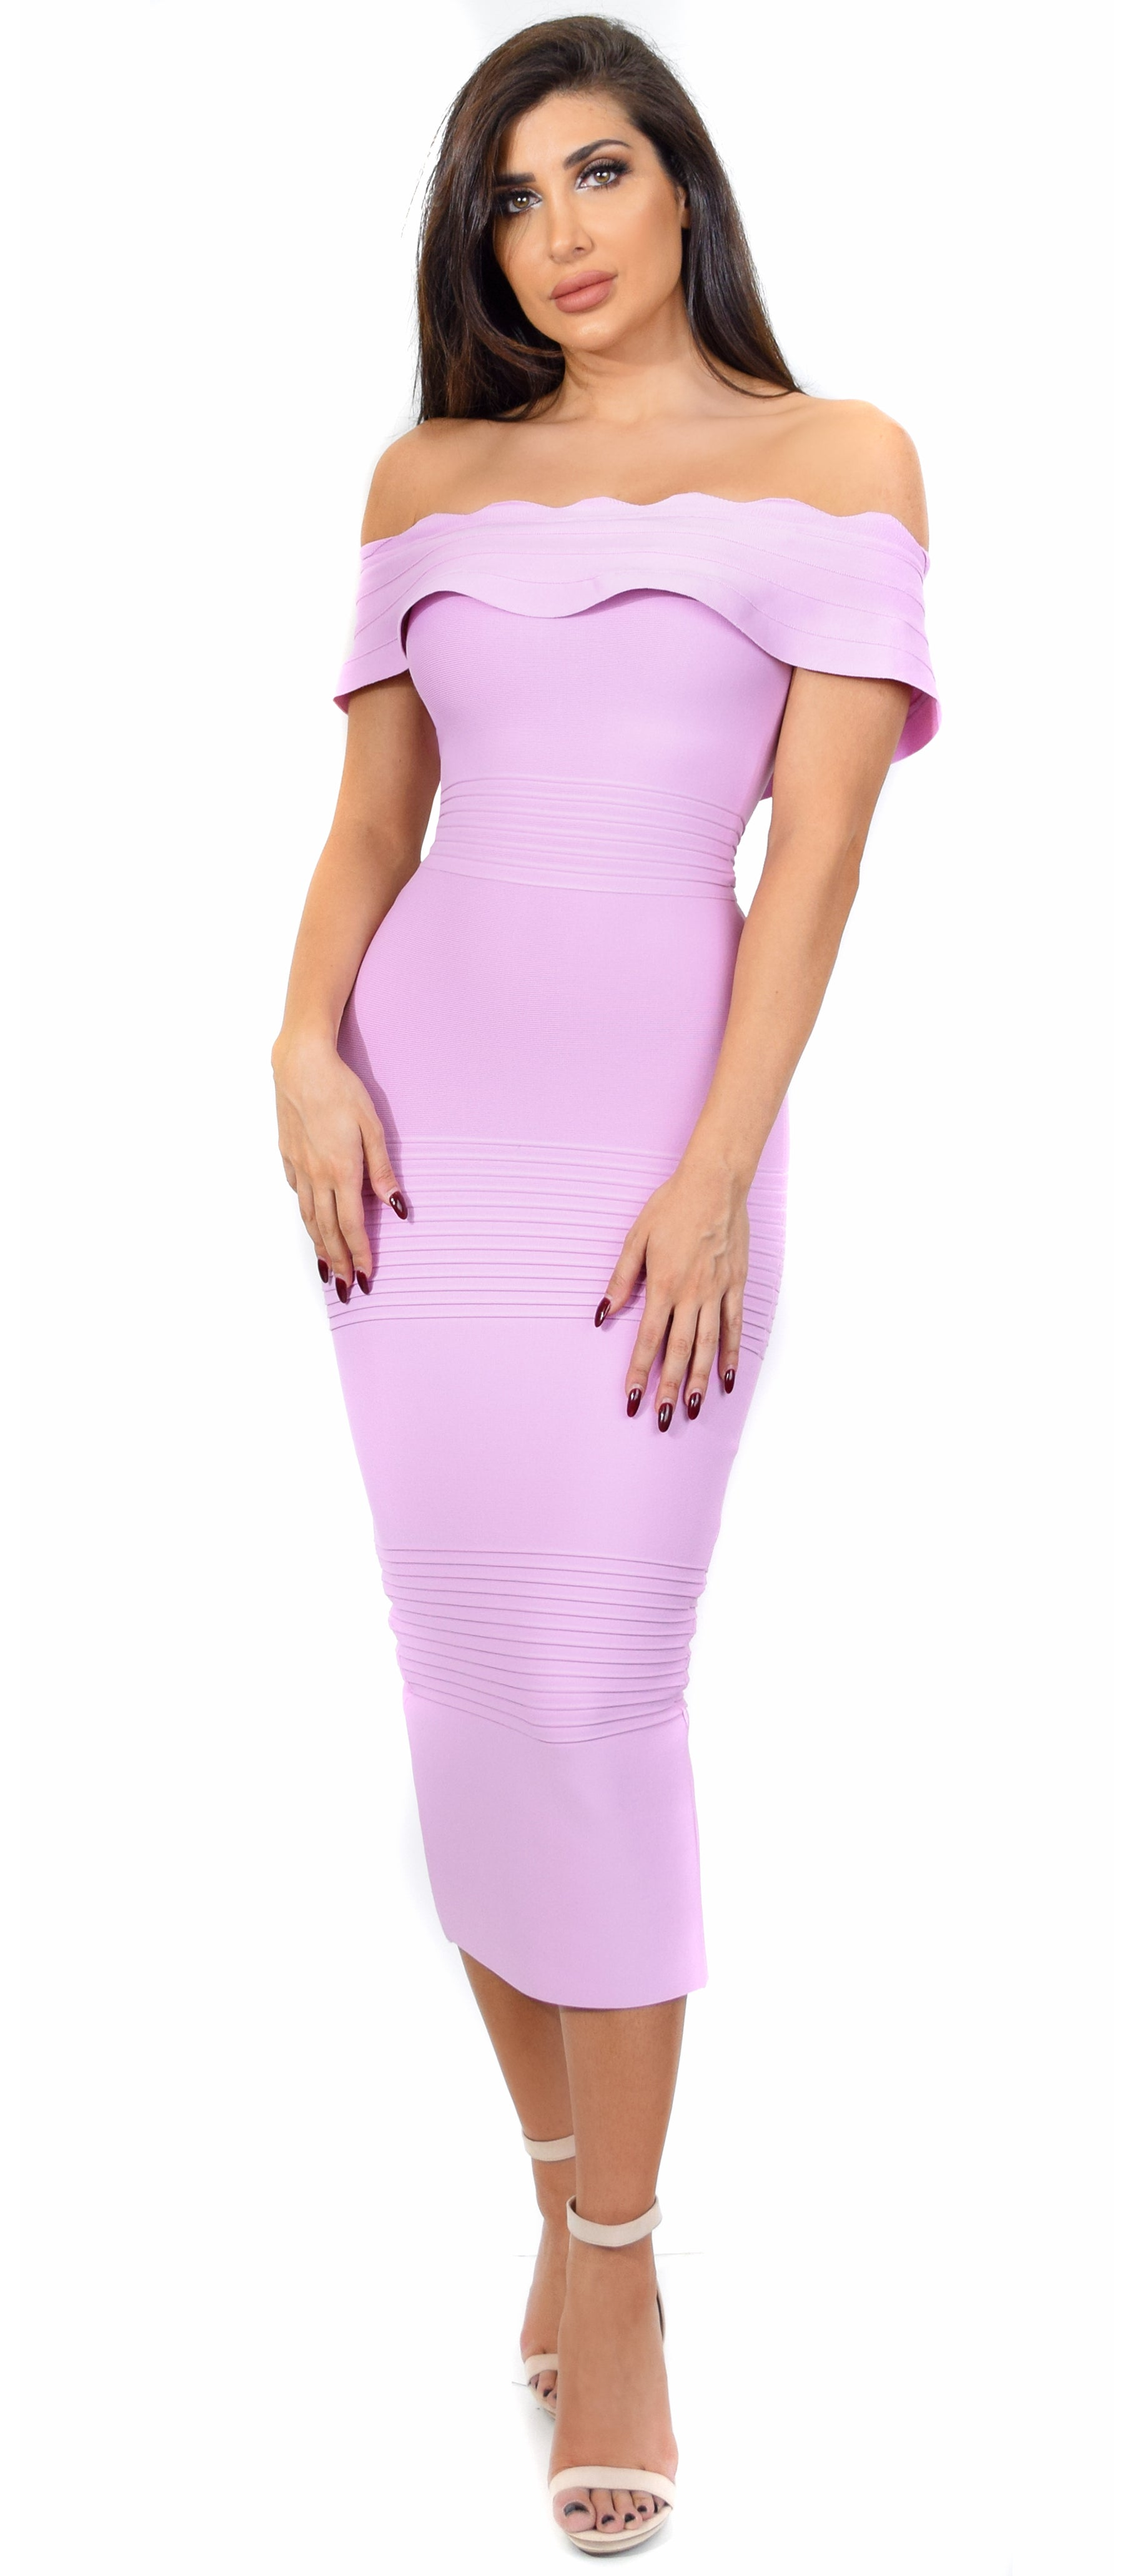 Simona Pink Off Shoulder Bandage Dress - Emprada